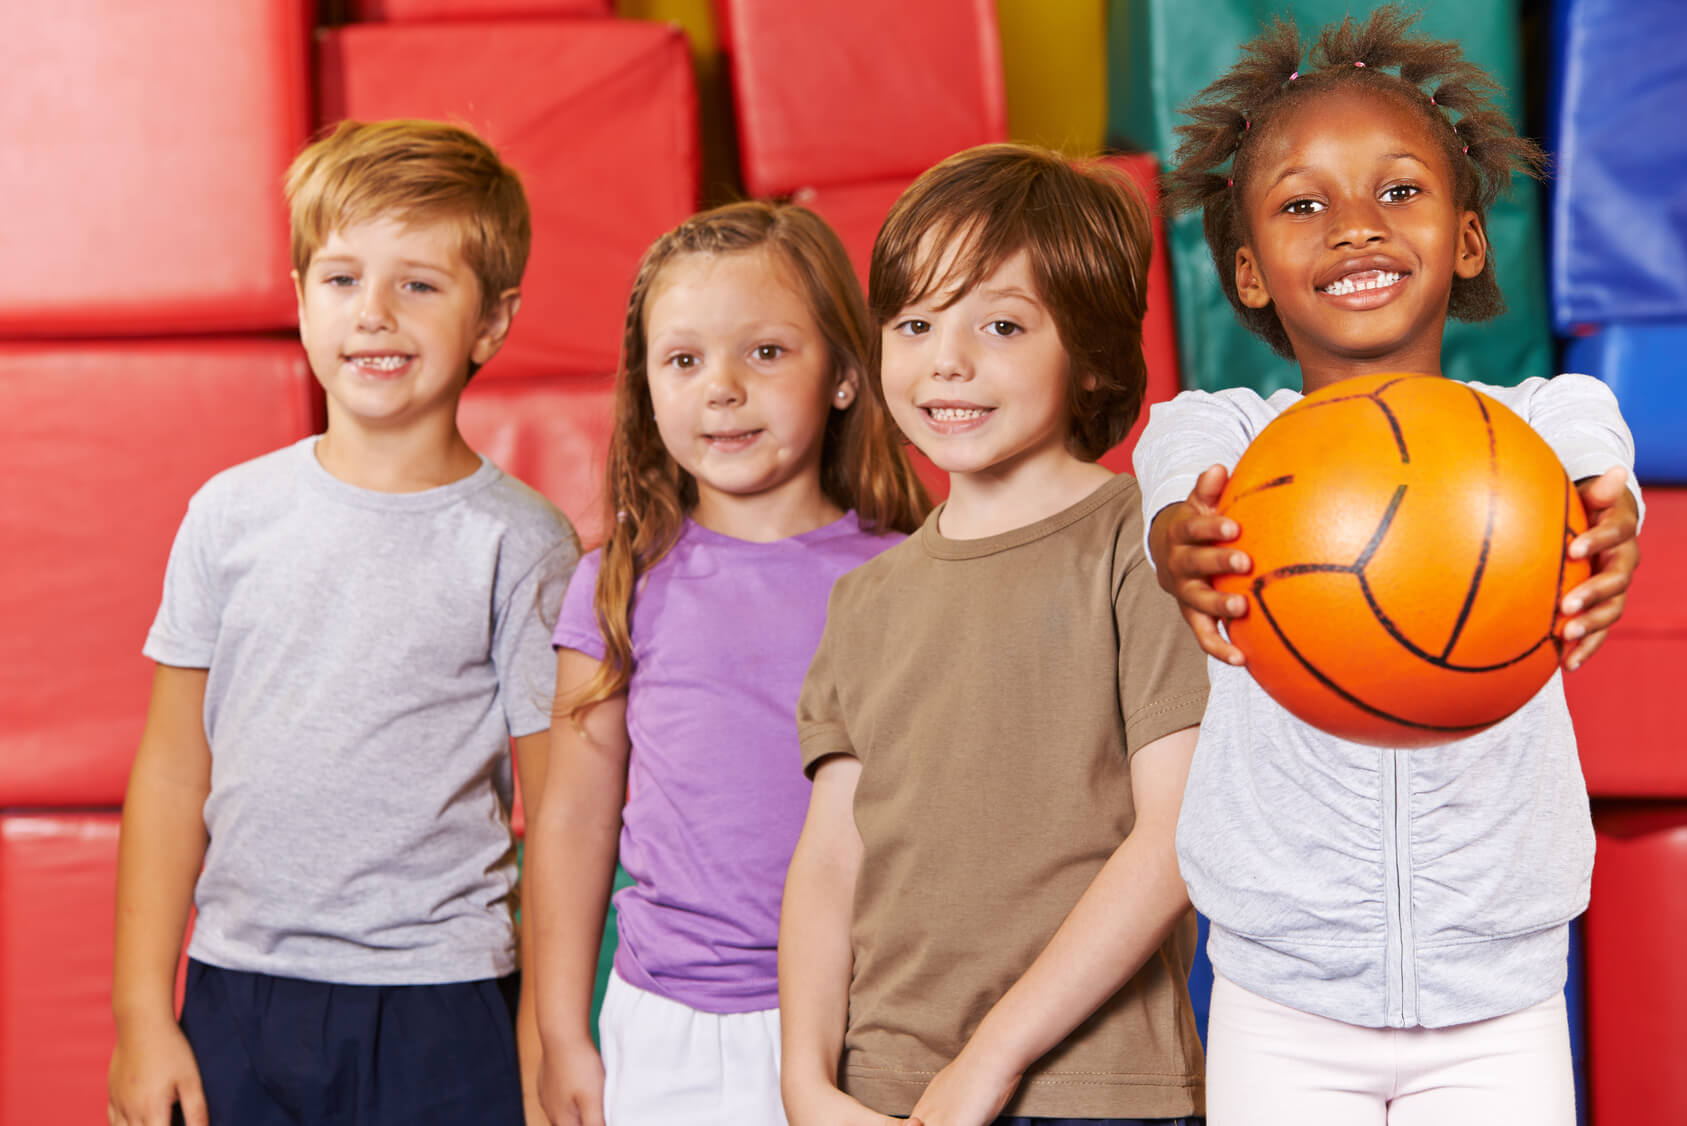 Children playing ball games | The TEFL Academy - Stirrers and Settlers for Young Learners